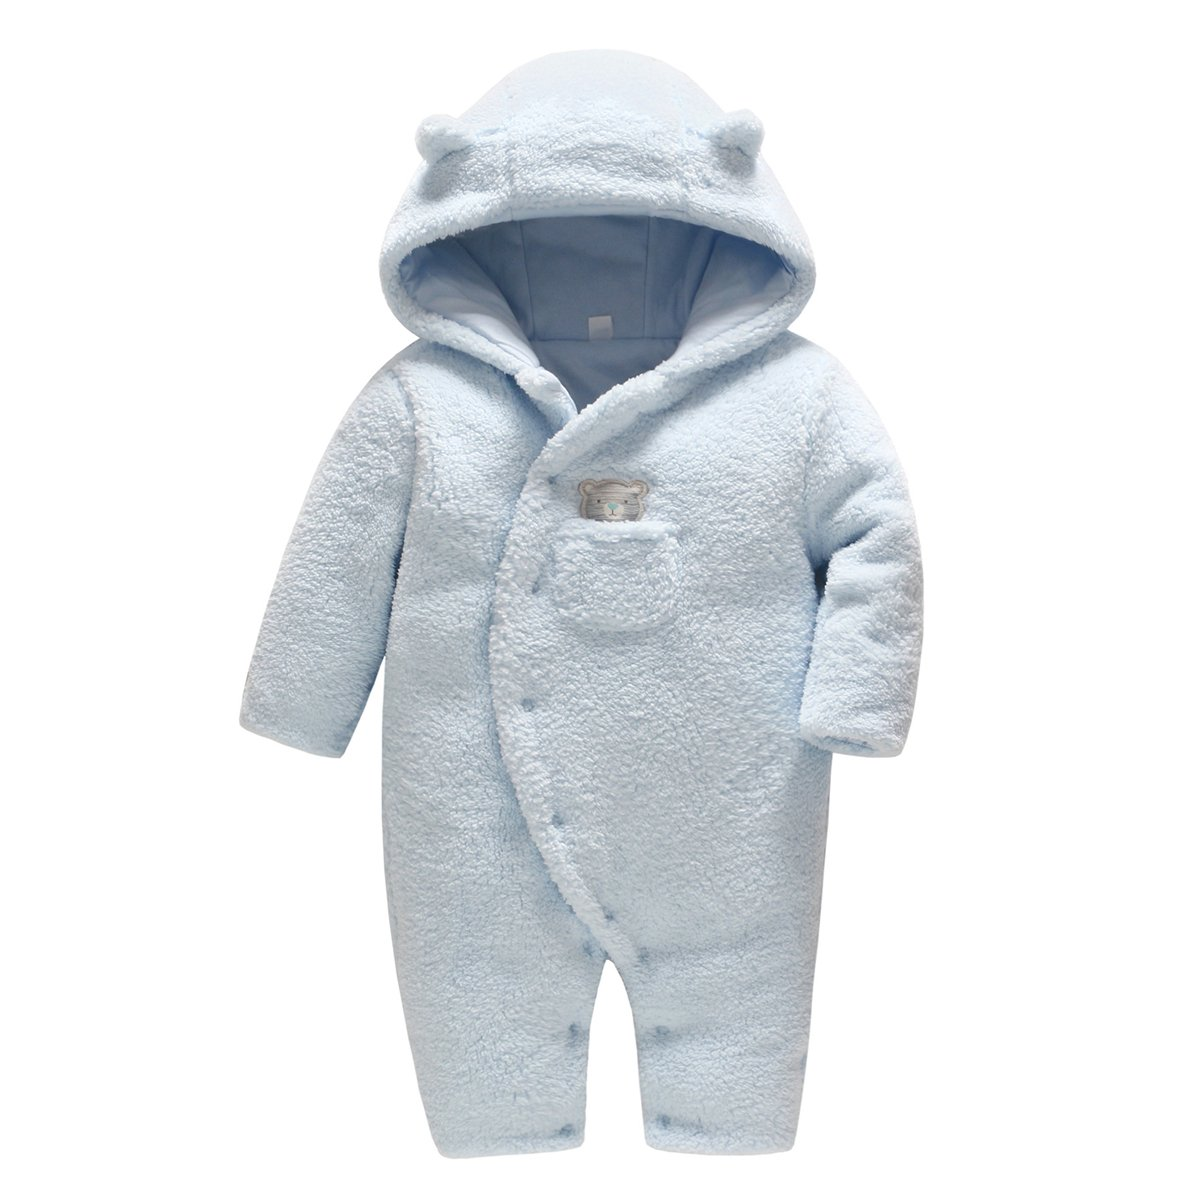 4ec1fdc37 Newborn Baby Hooded Fleece Romper Snowsuit Infant Onesies Jumpsuit Fall  Winter Outwear Outfits: Amazon.co.uk: Clothing